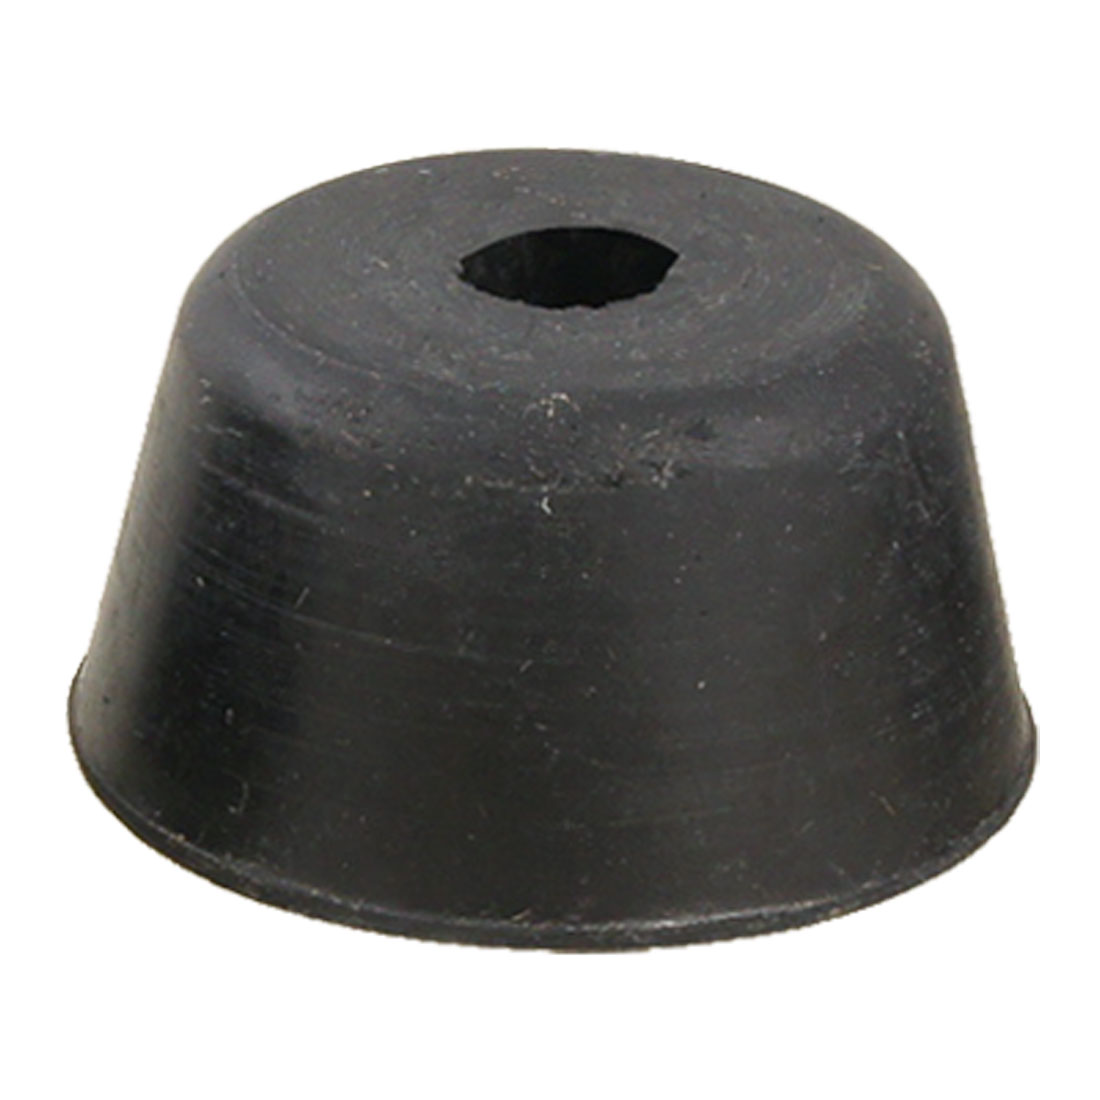 10 Pcs 40mm x 22mm Furniture Conical Rubber Feet Pad Cove Bumper